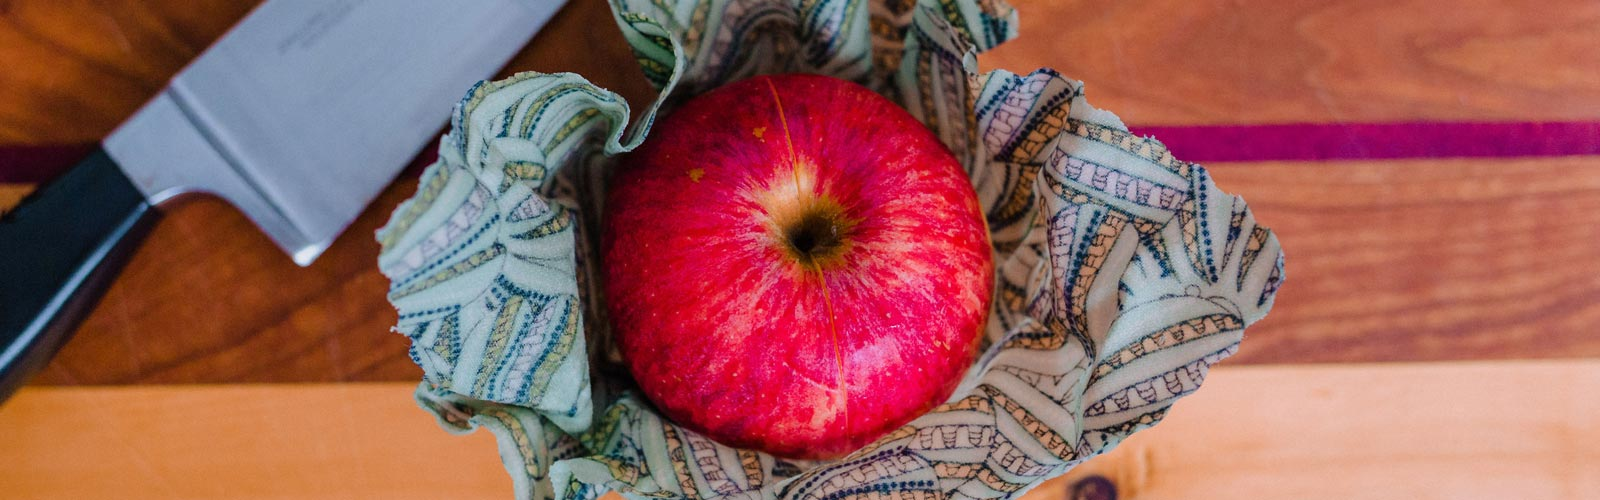 Beeswax wrap around an apple, mad in Canada on Vancouver Island by Island Reveries